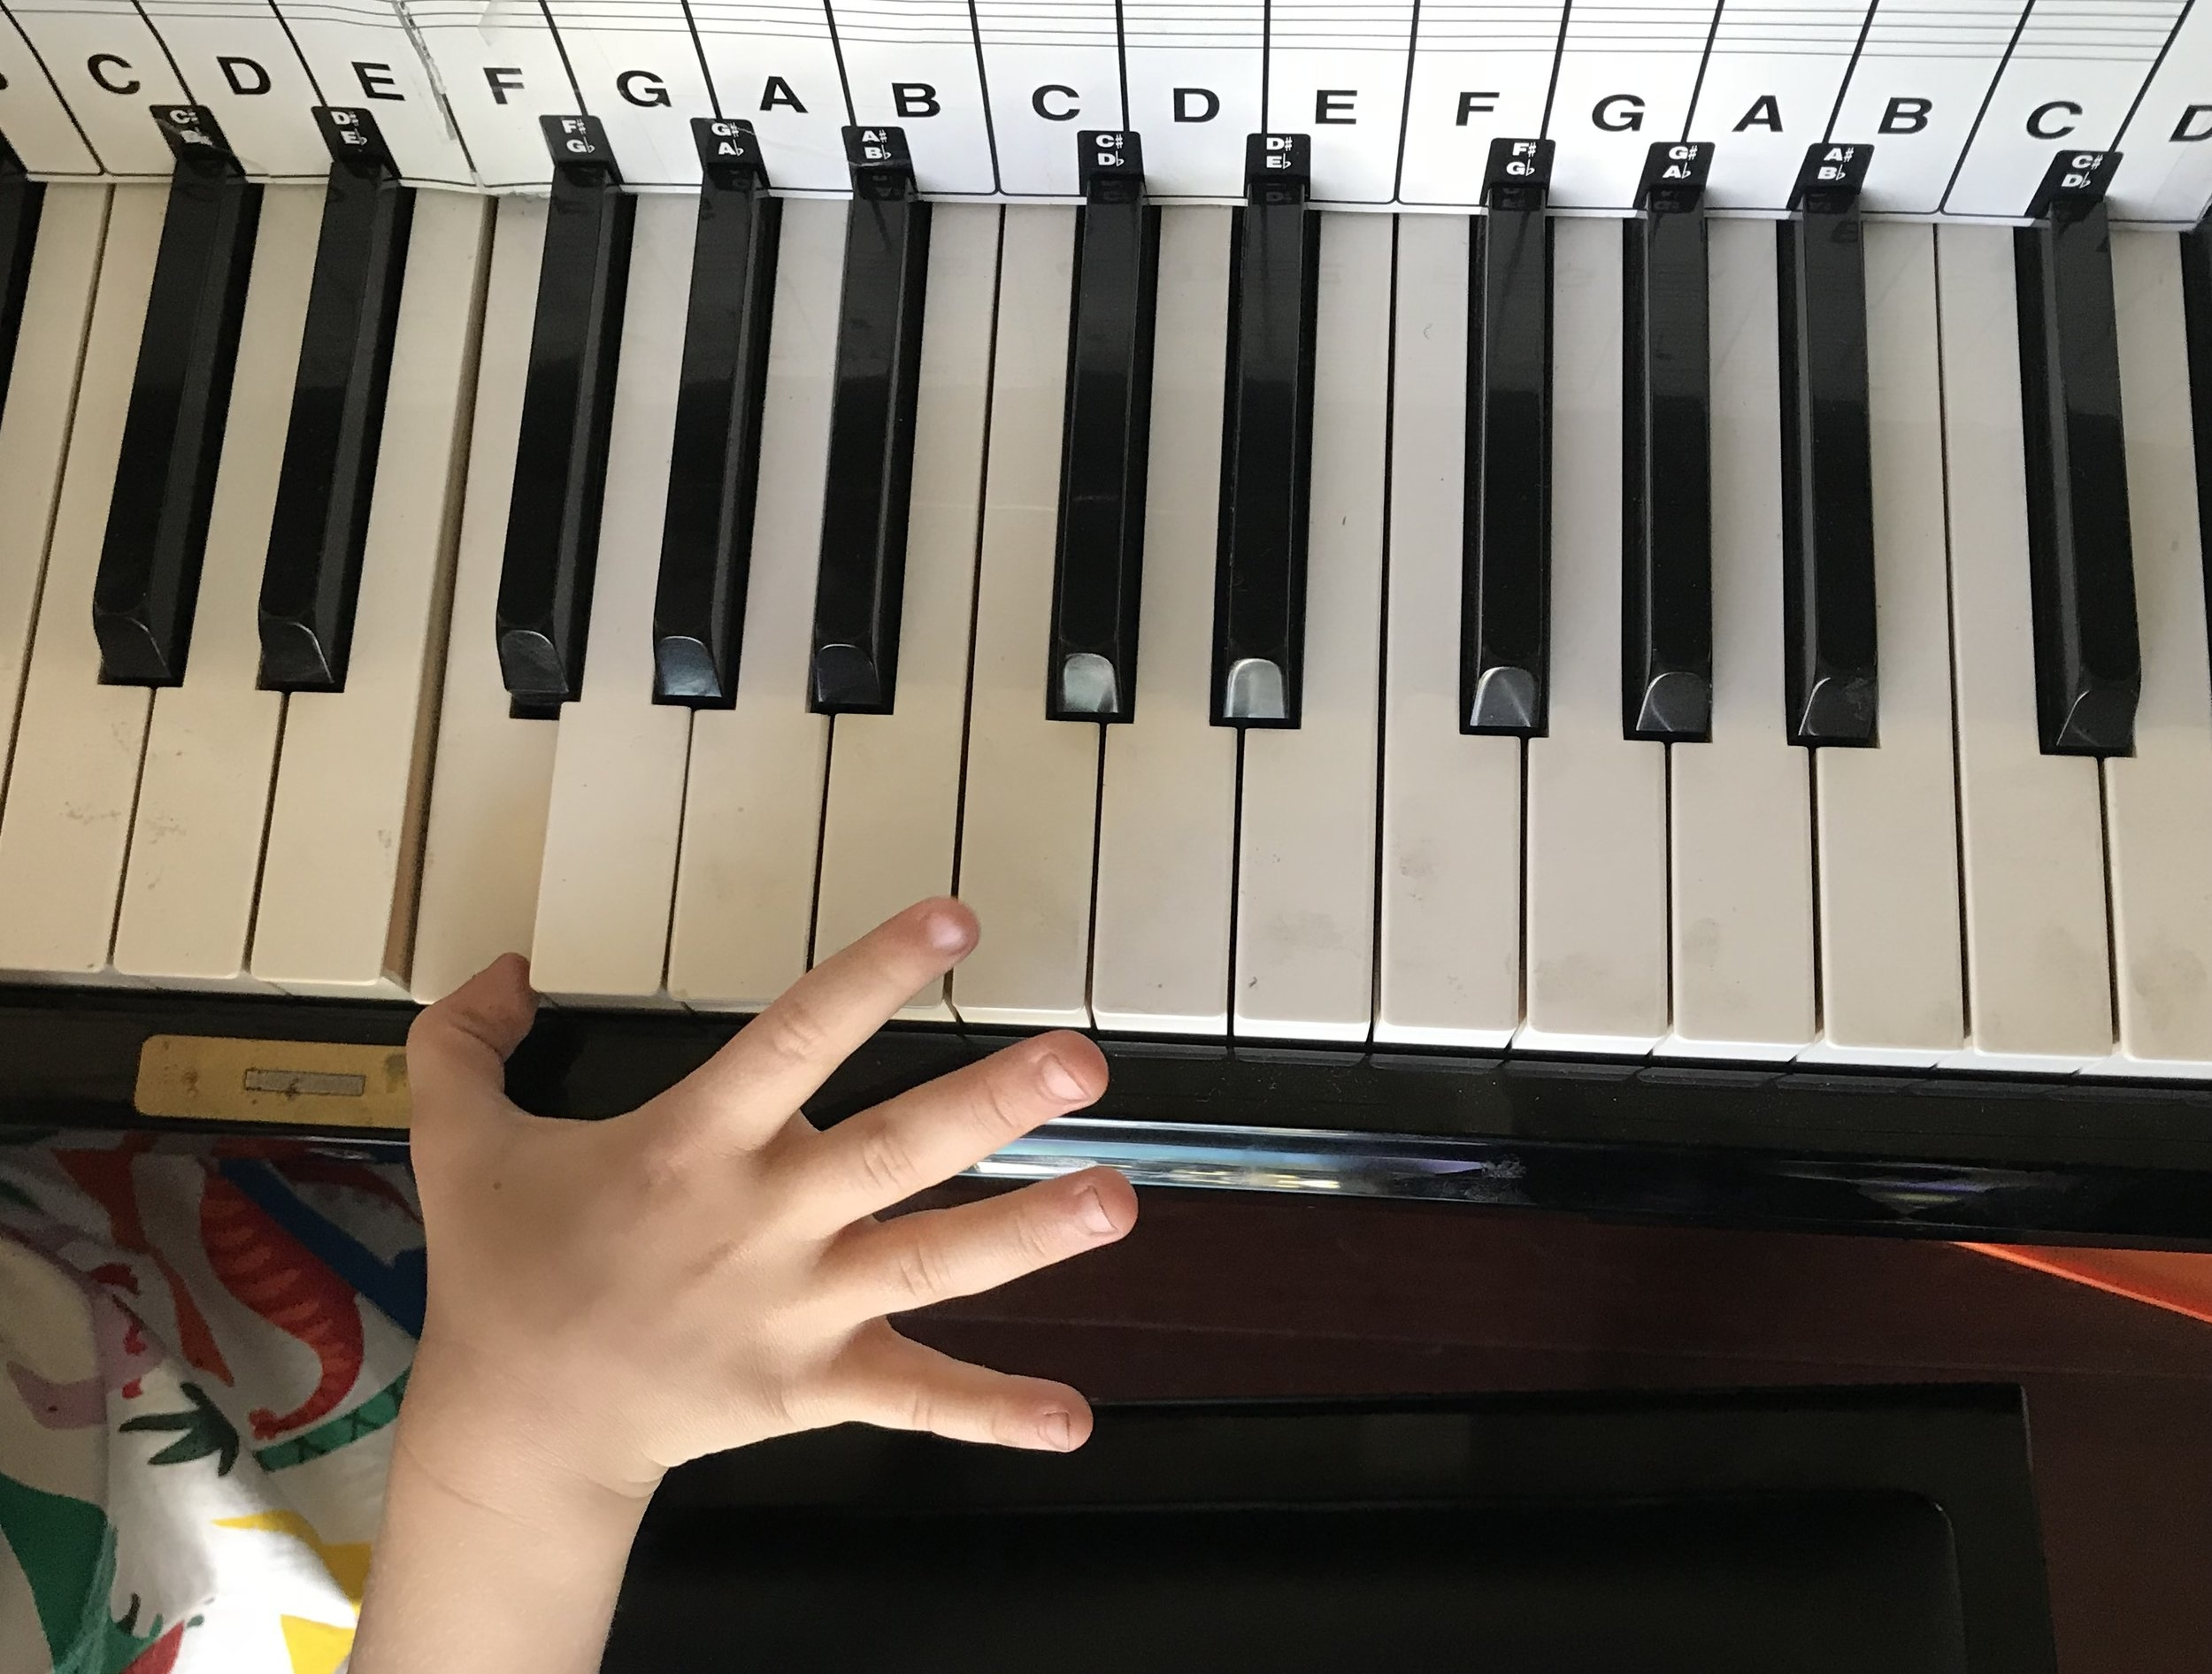 Notice all the happy smudges on the keys? They wipe off :)